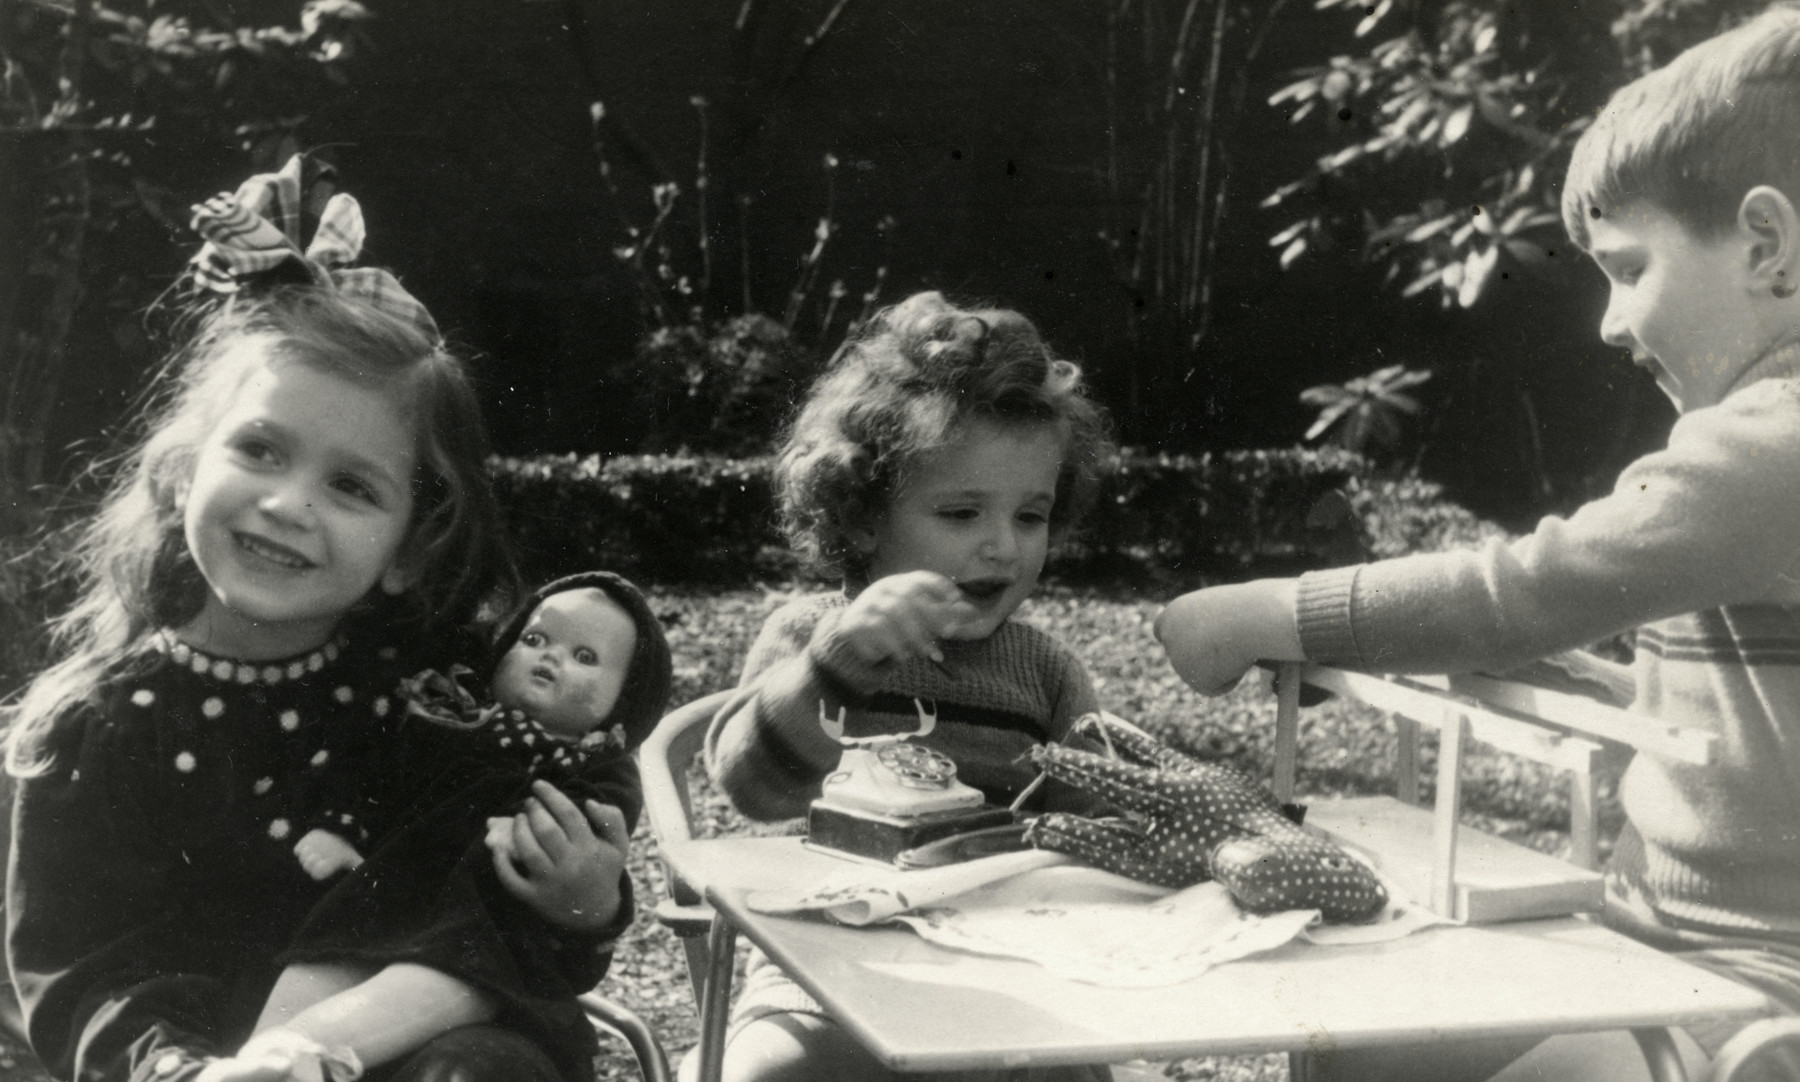 The Eisenmann children play in their garden of their home in Amsterdam prior to going into hiding.  Pictured are Ruth, David and Gershon Eisenmann.